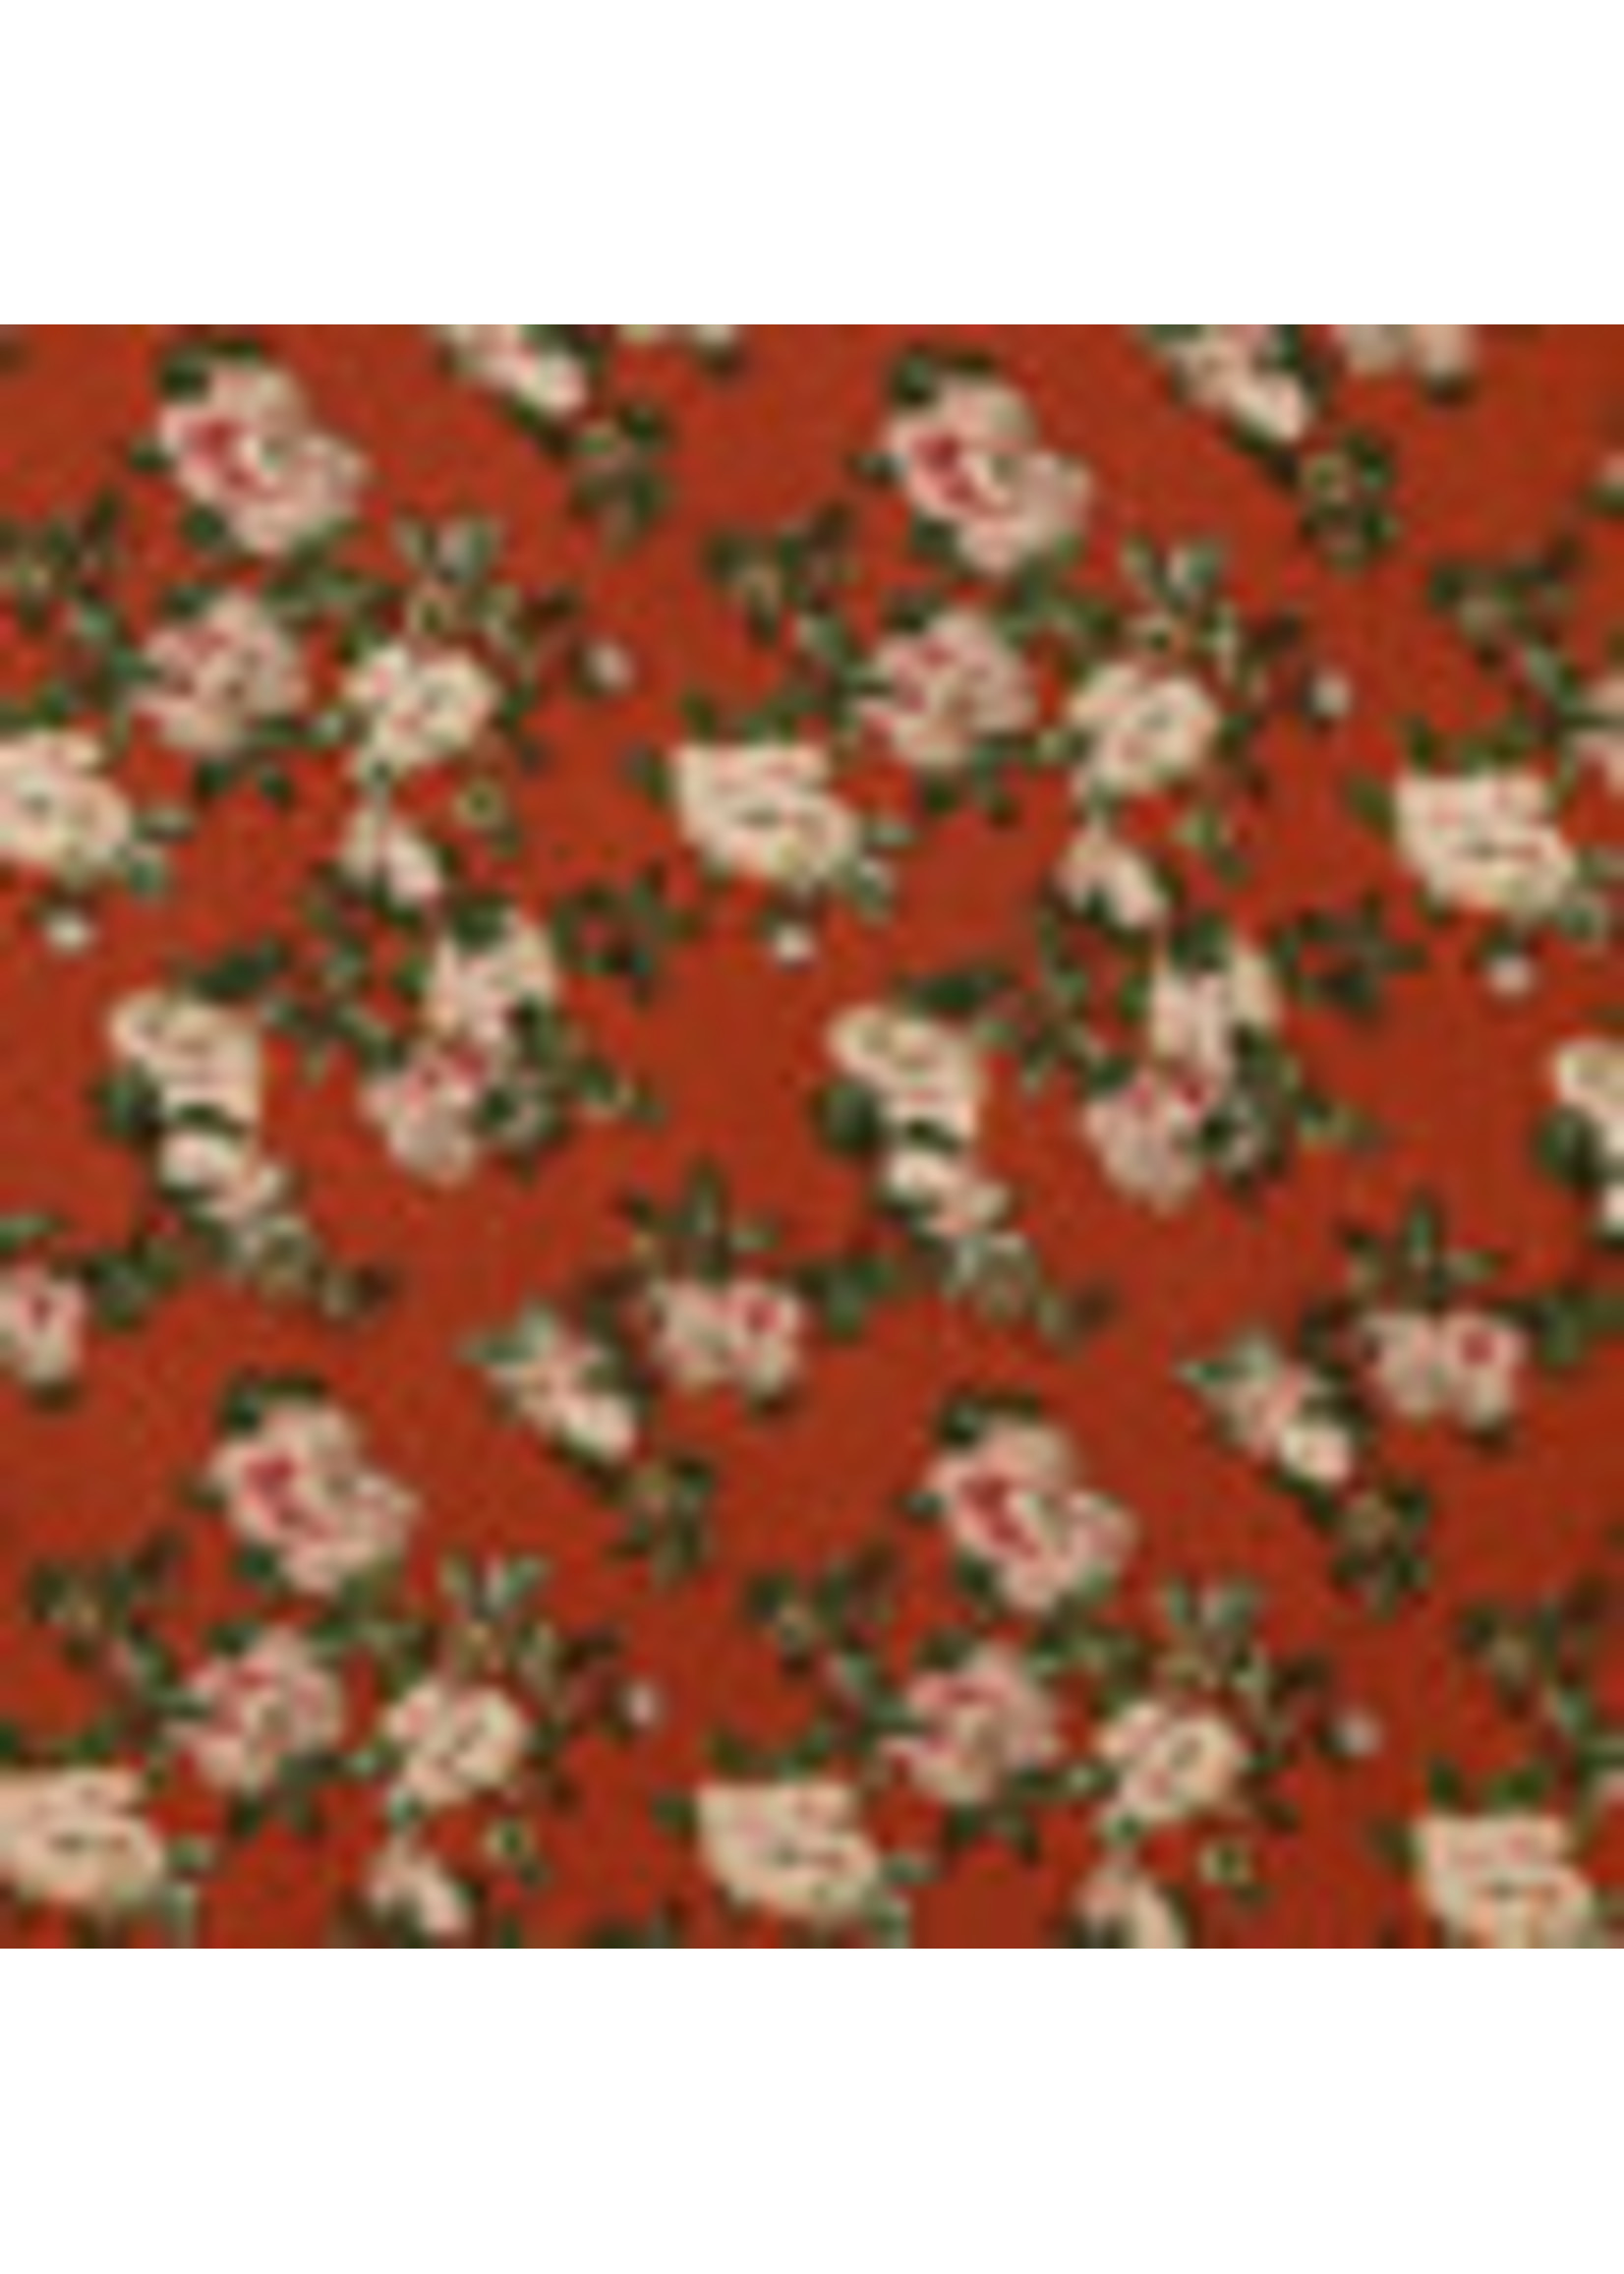 Radiance Foil Print - Rusty red